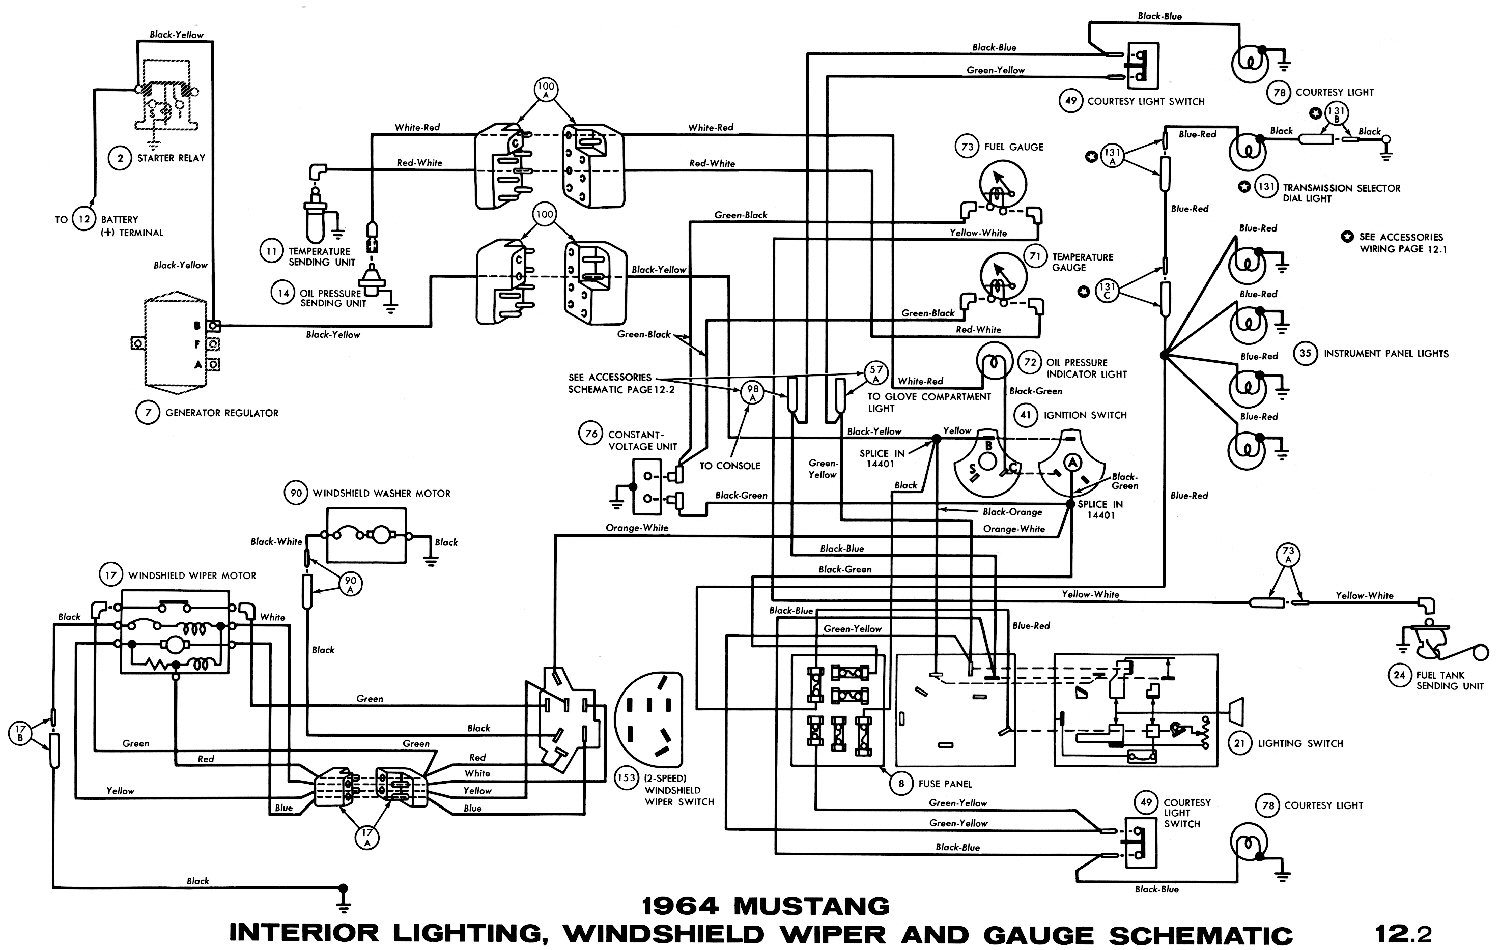 1965 Mustang Wiring Diagram Printable Easy Diagrams Heater Switch Ford 1980 1964